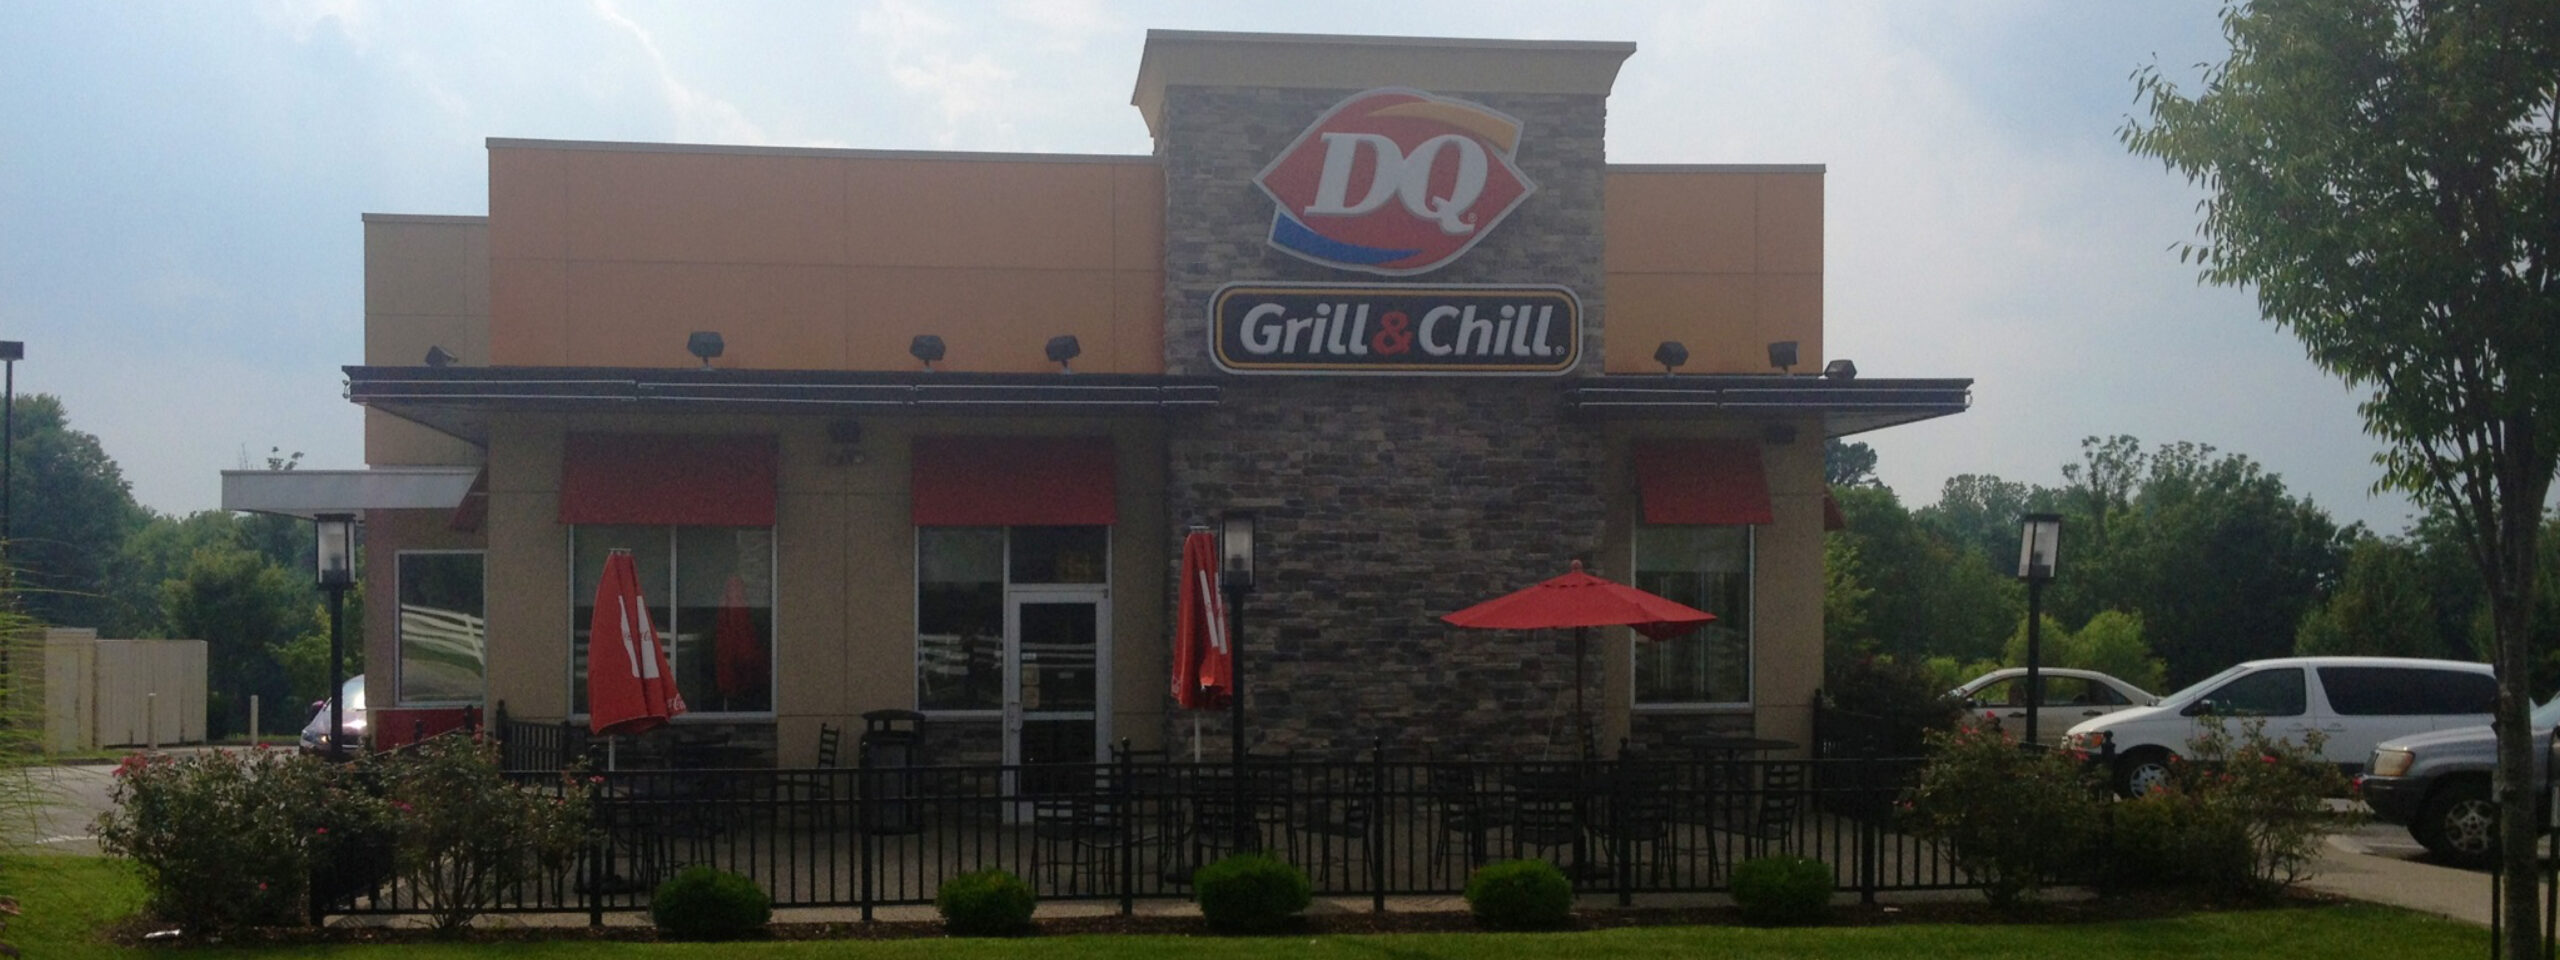 Simpsonville, KY Fourteen Foods DQ Restaurant